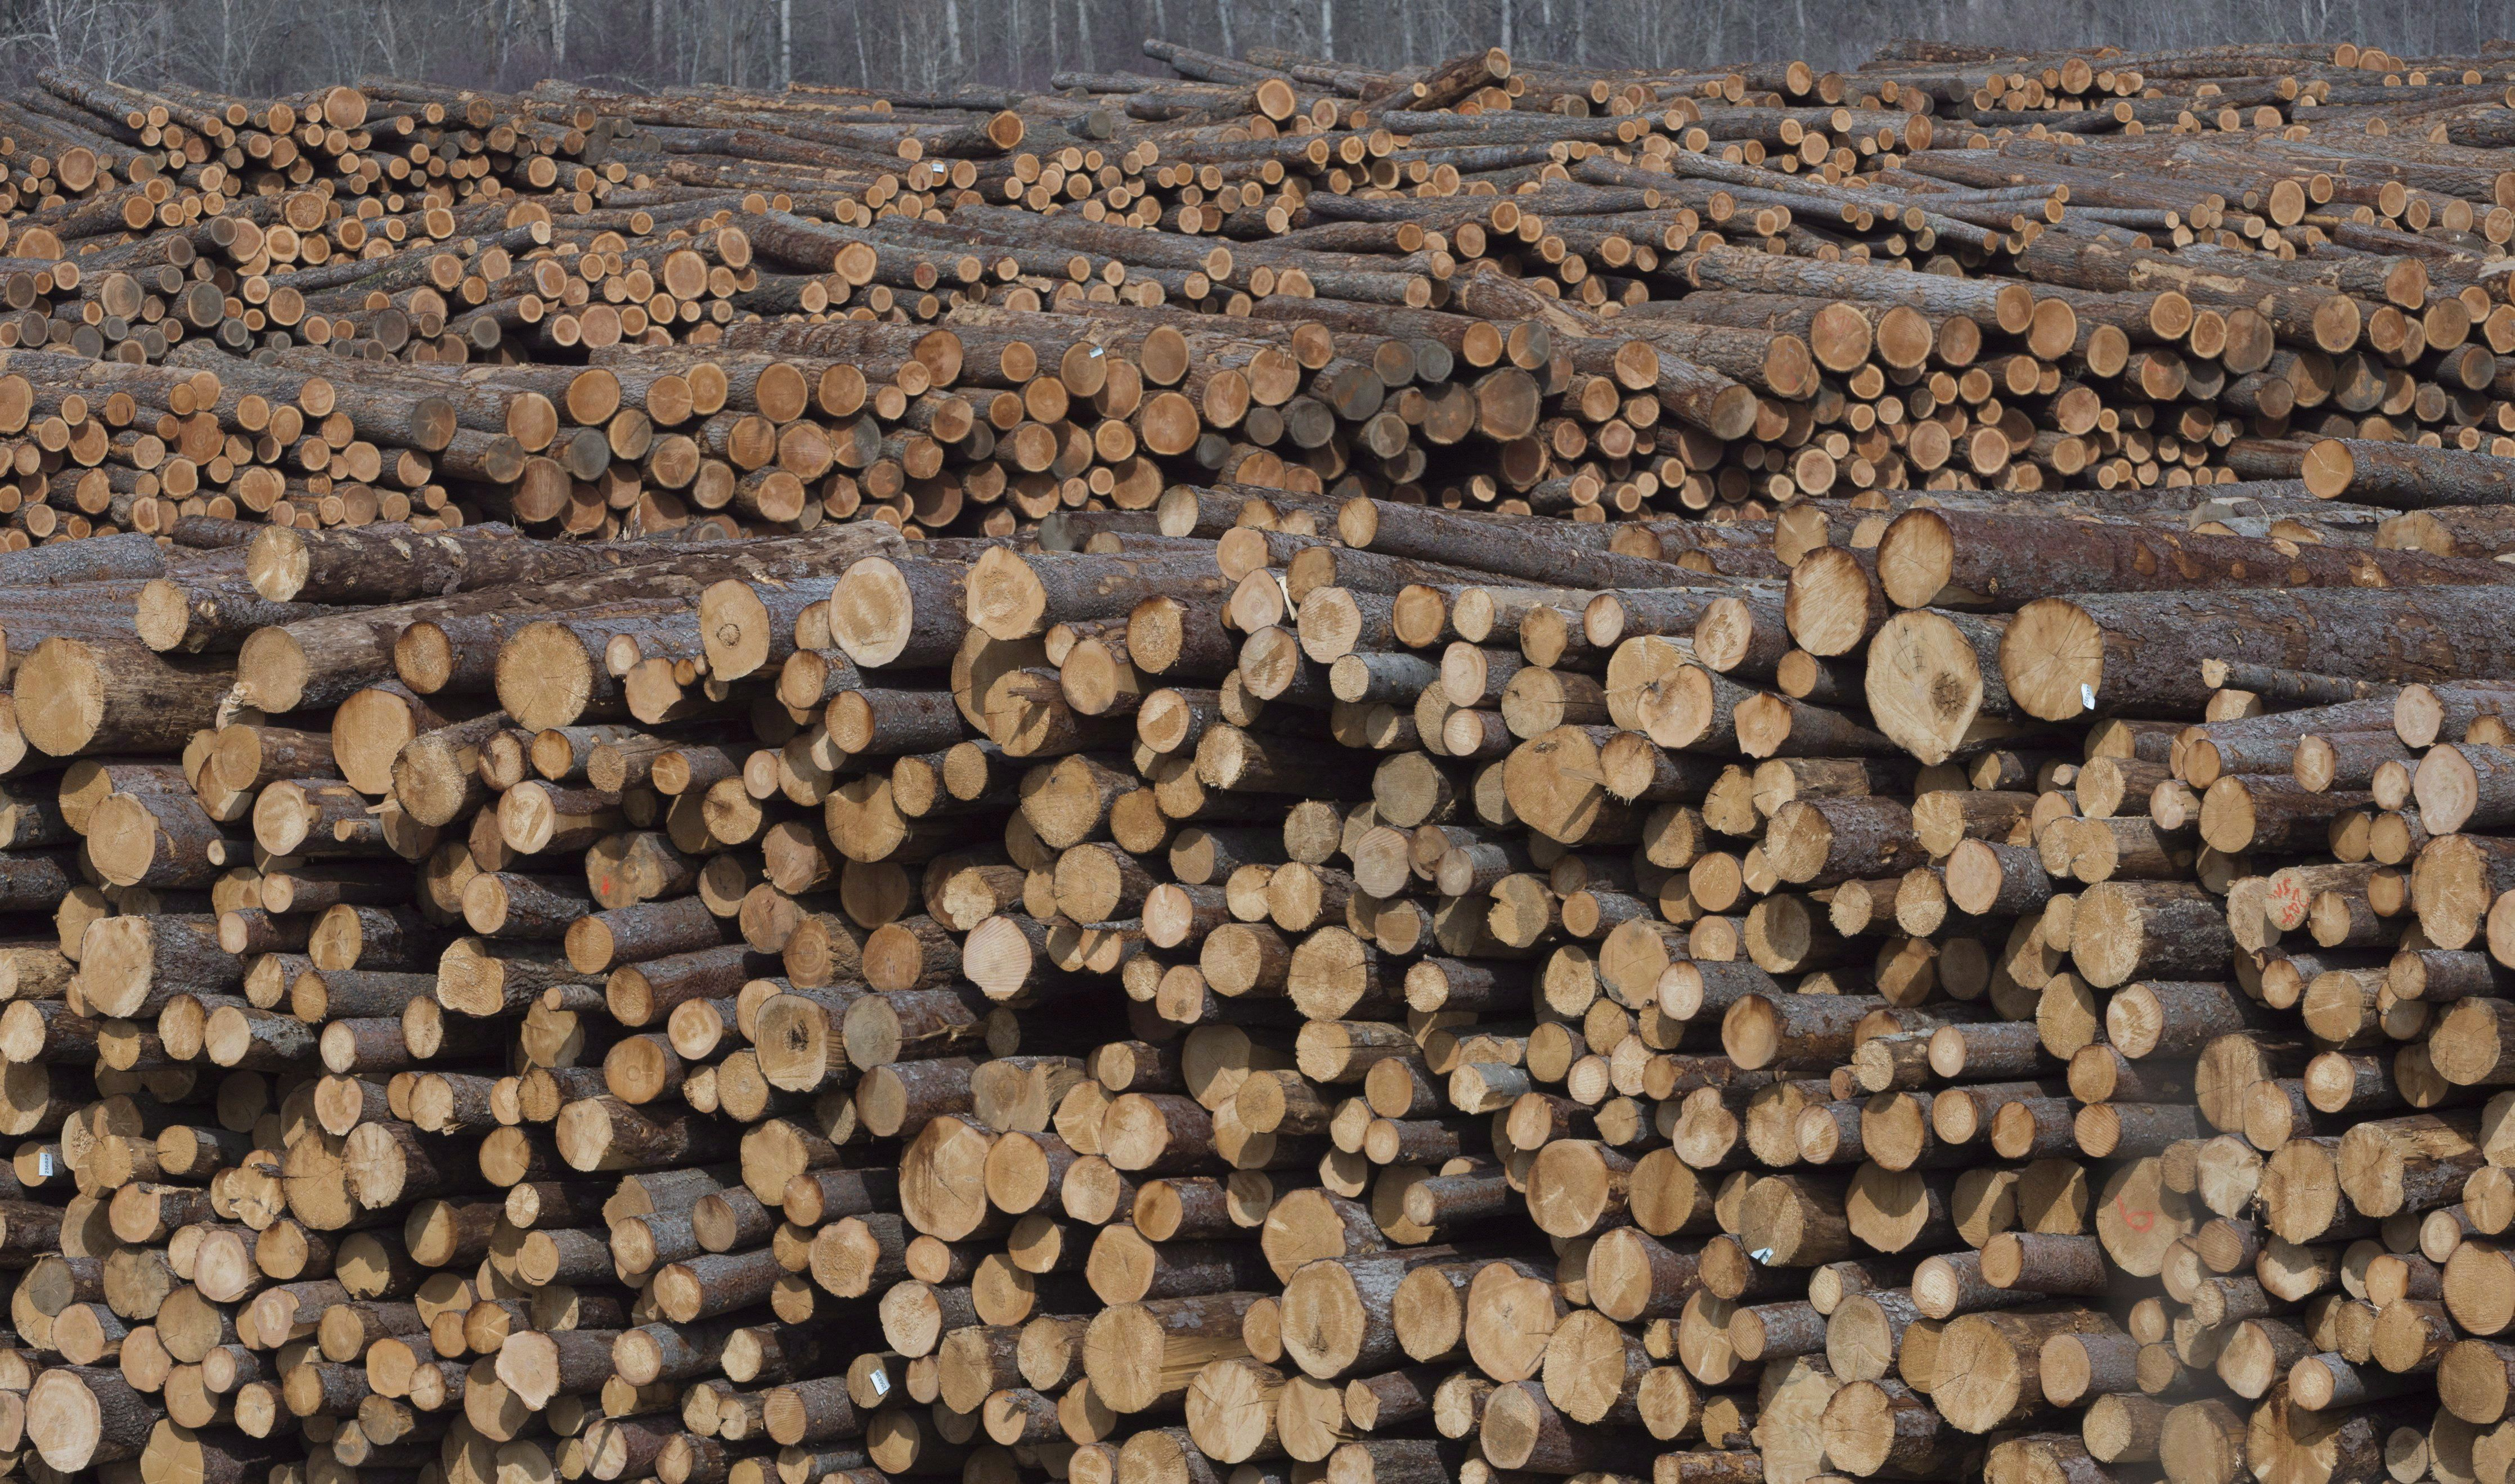 B.C. earmarks $69-million to help forestry industry deal with job cuts